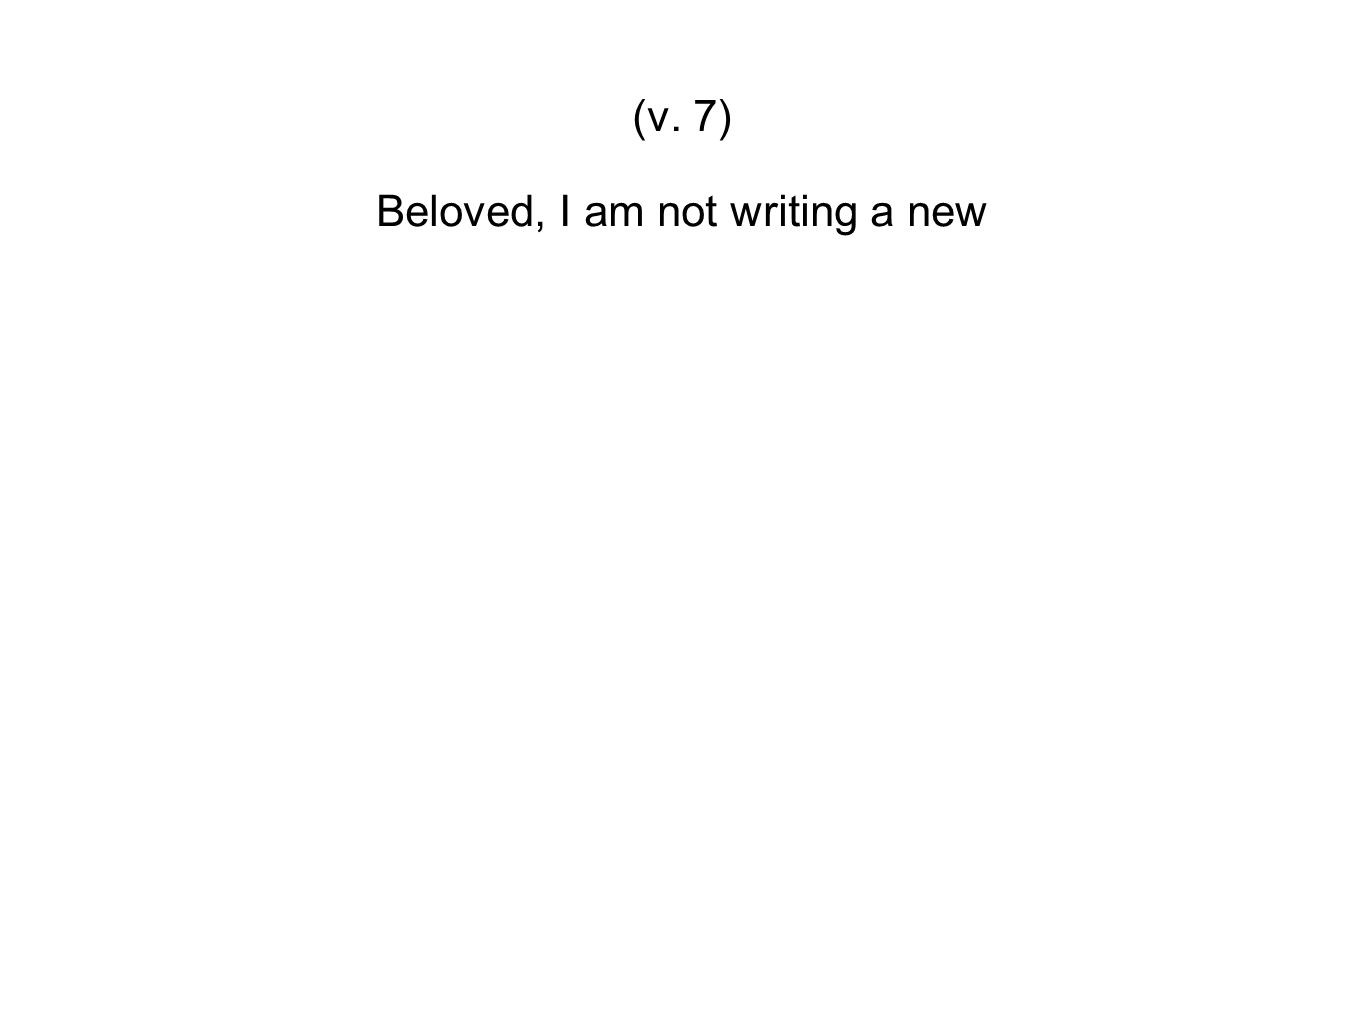 Beloved, I am not writing a new